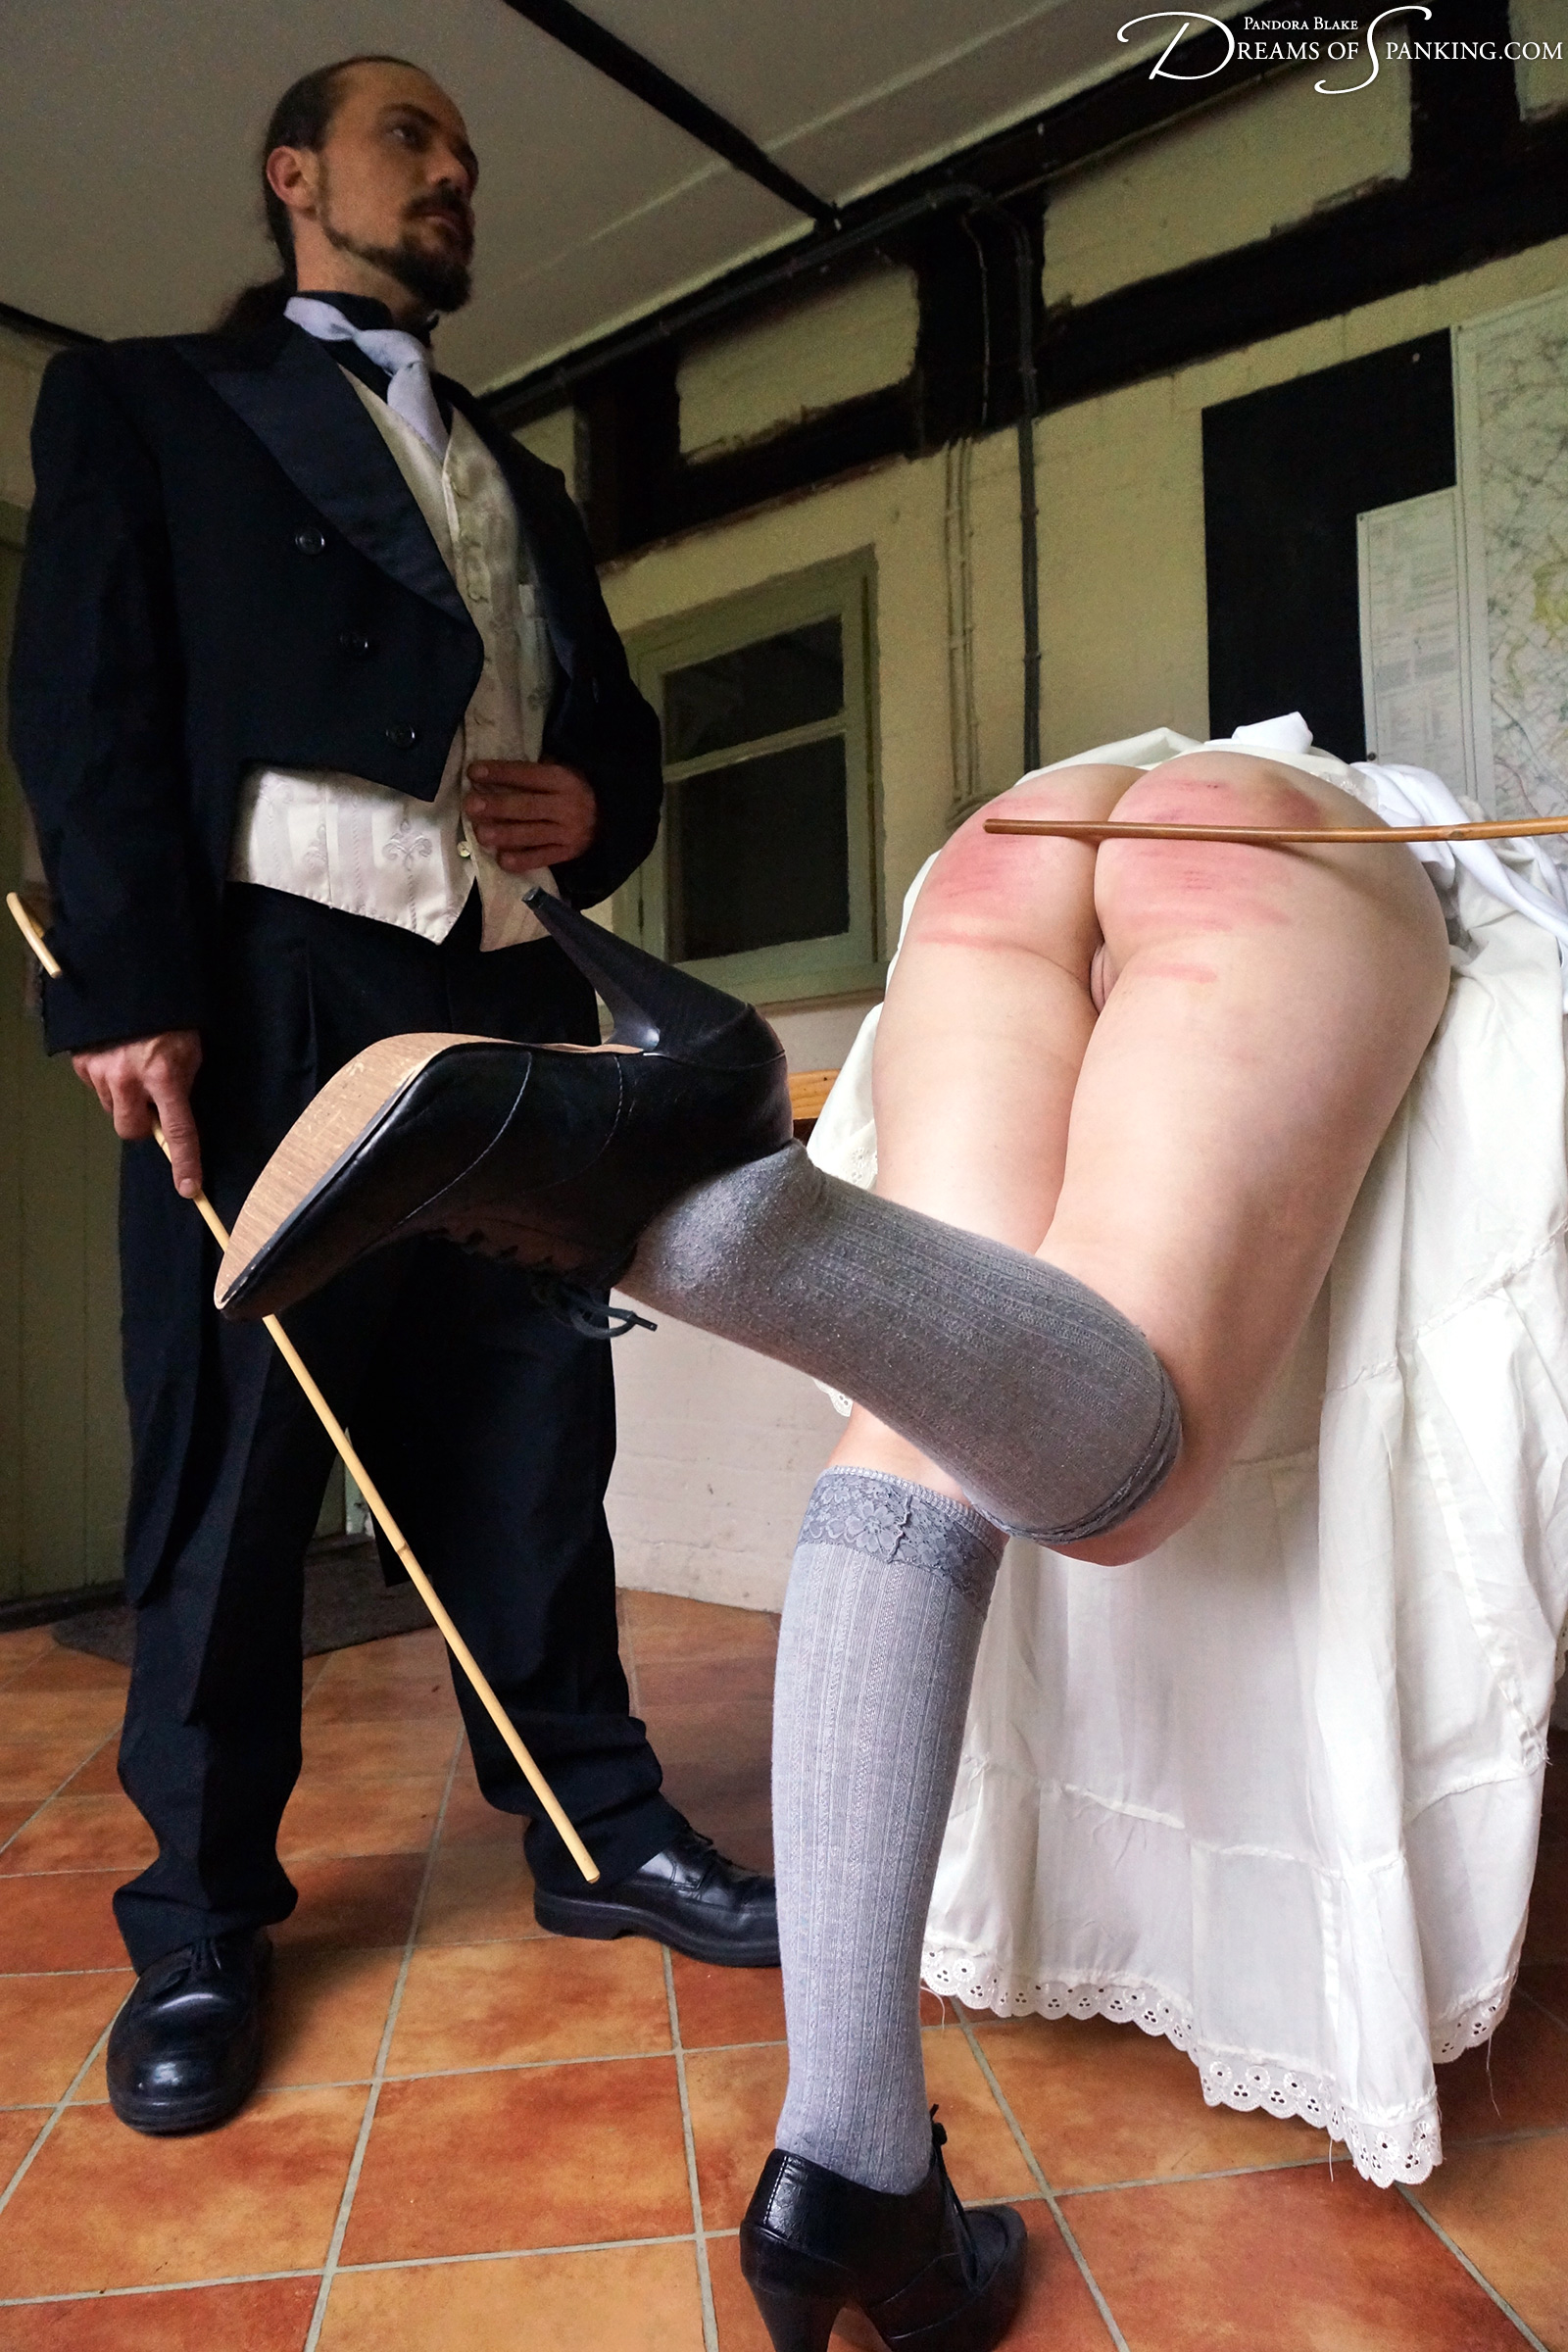 The maid is severely punished for stealing from her employers